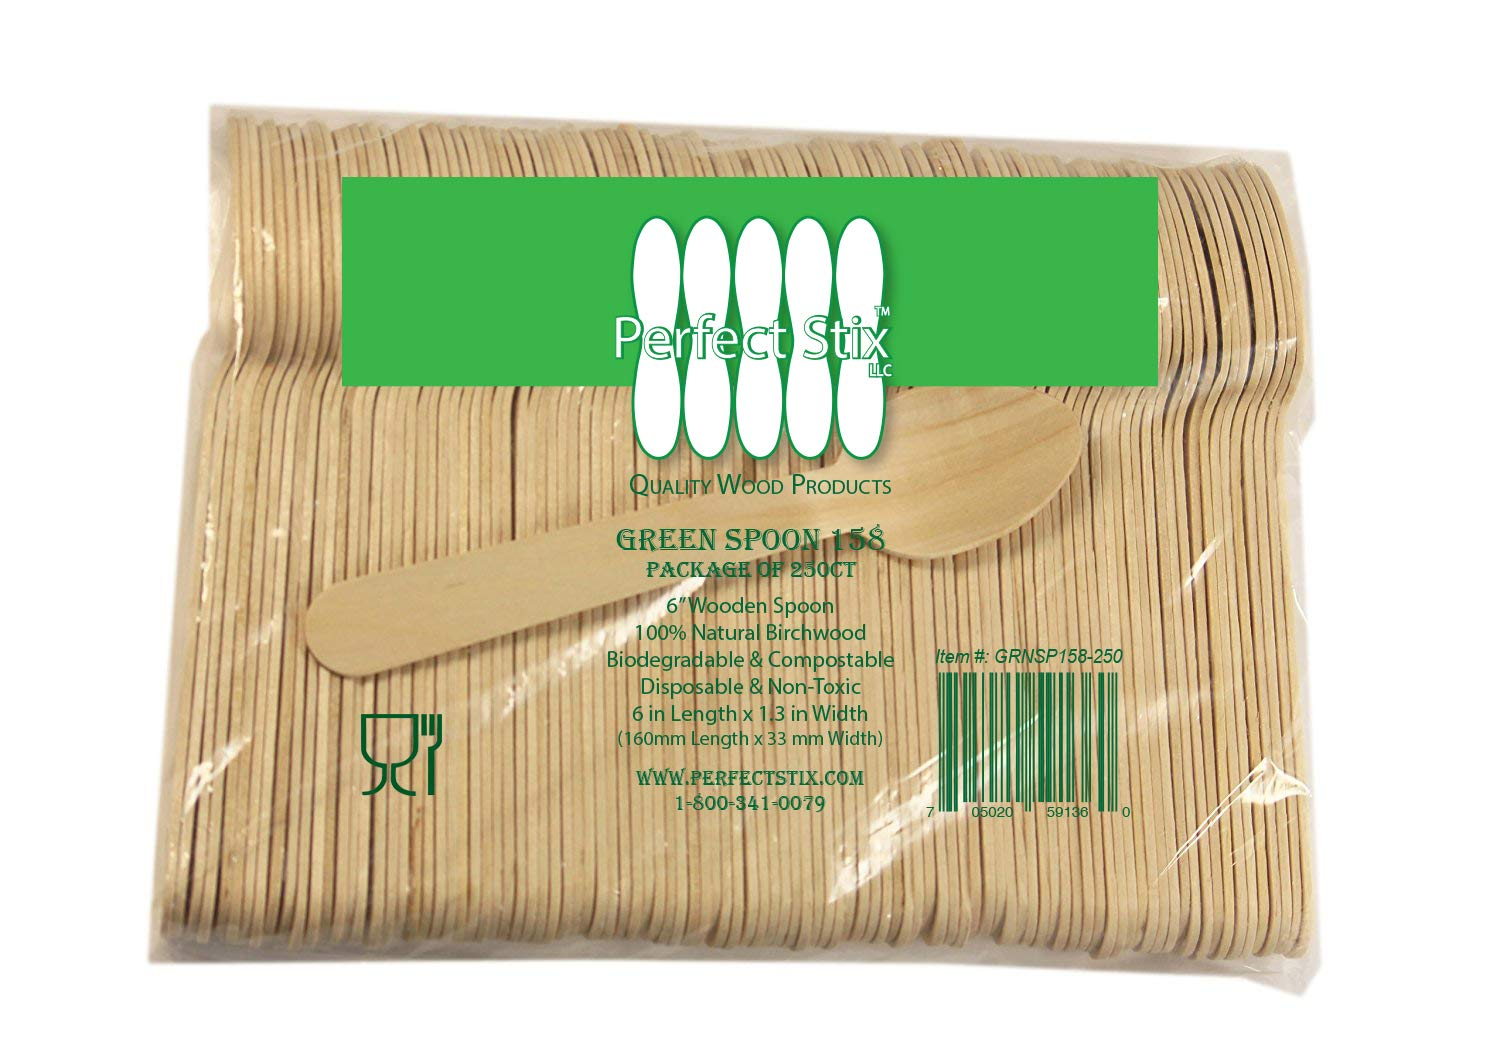 Perfect Stix Green Spoon 158-250 Wooden Disposable Spoons, 6'' Length (Pack of 250)